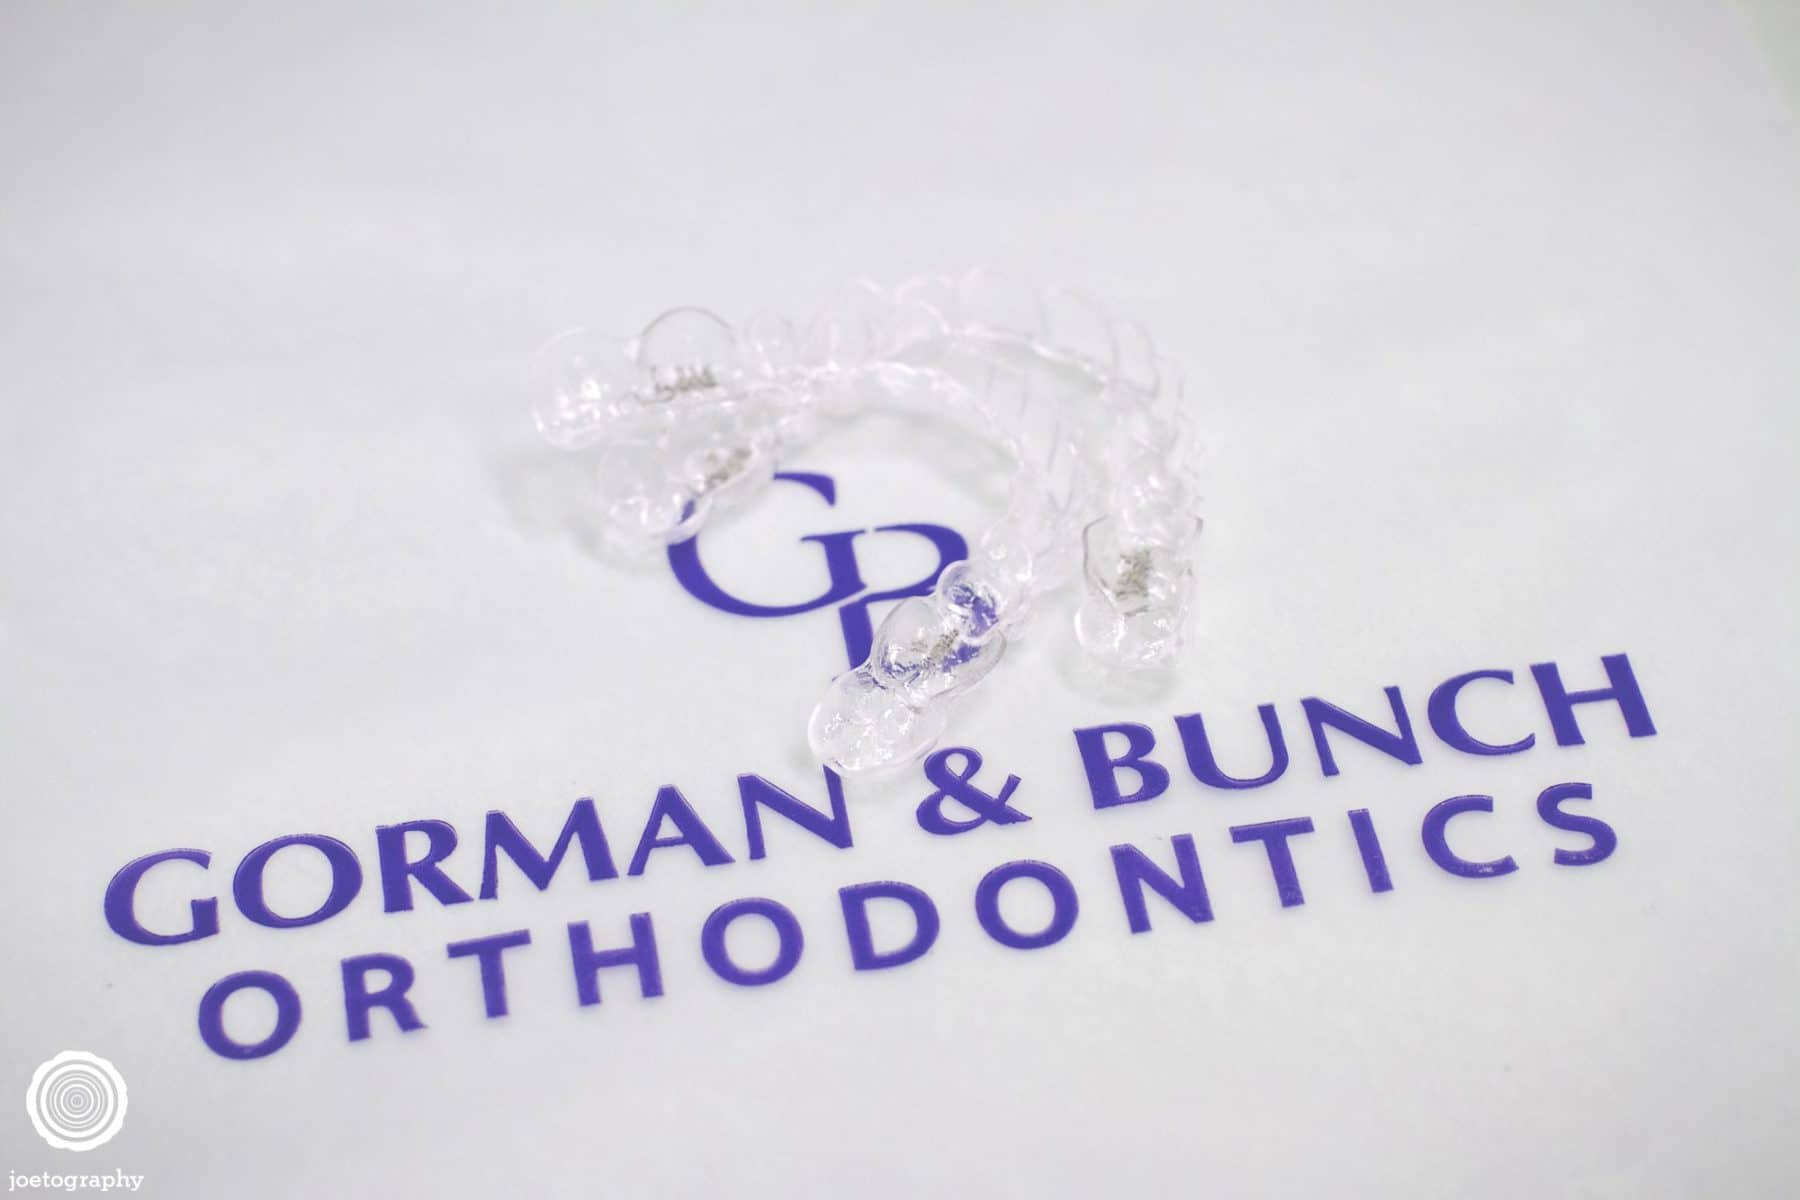 gorman-bunch-orthodontists-website-photography-central-indiana-11